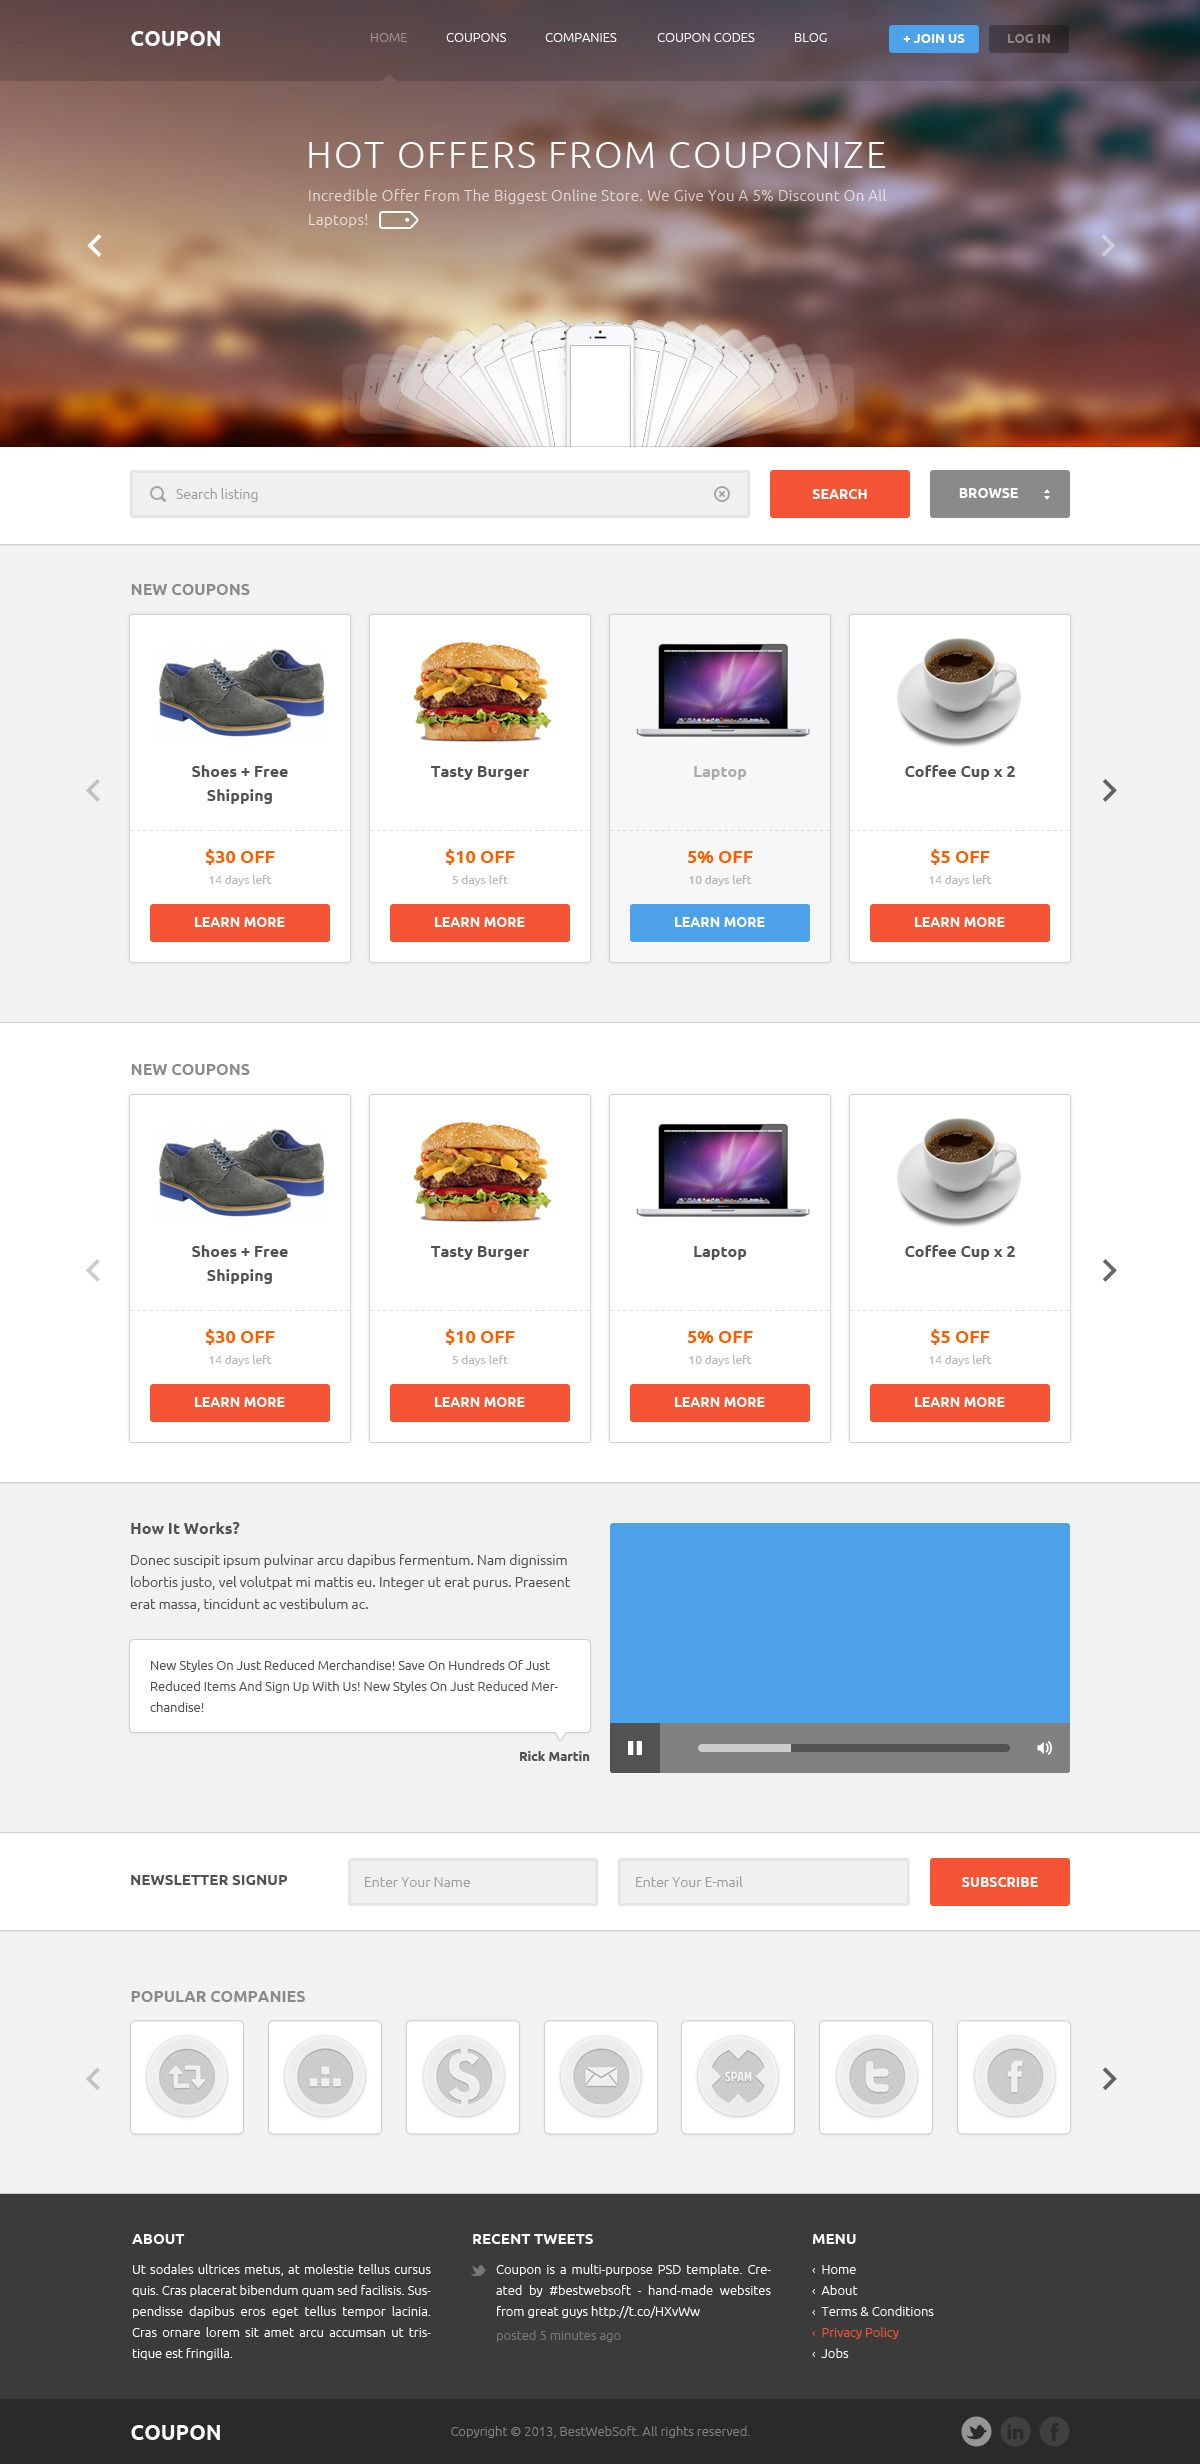 Coupon - Coupons and Promo Codes PSD Template | Photoshop website ...